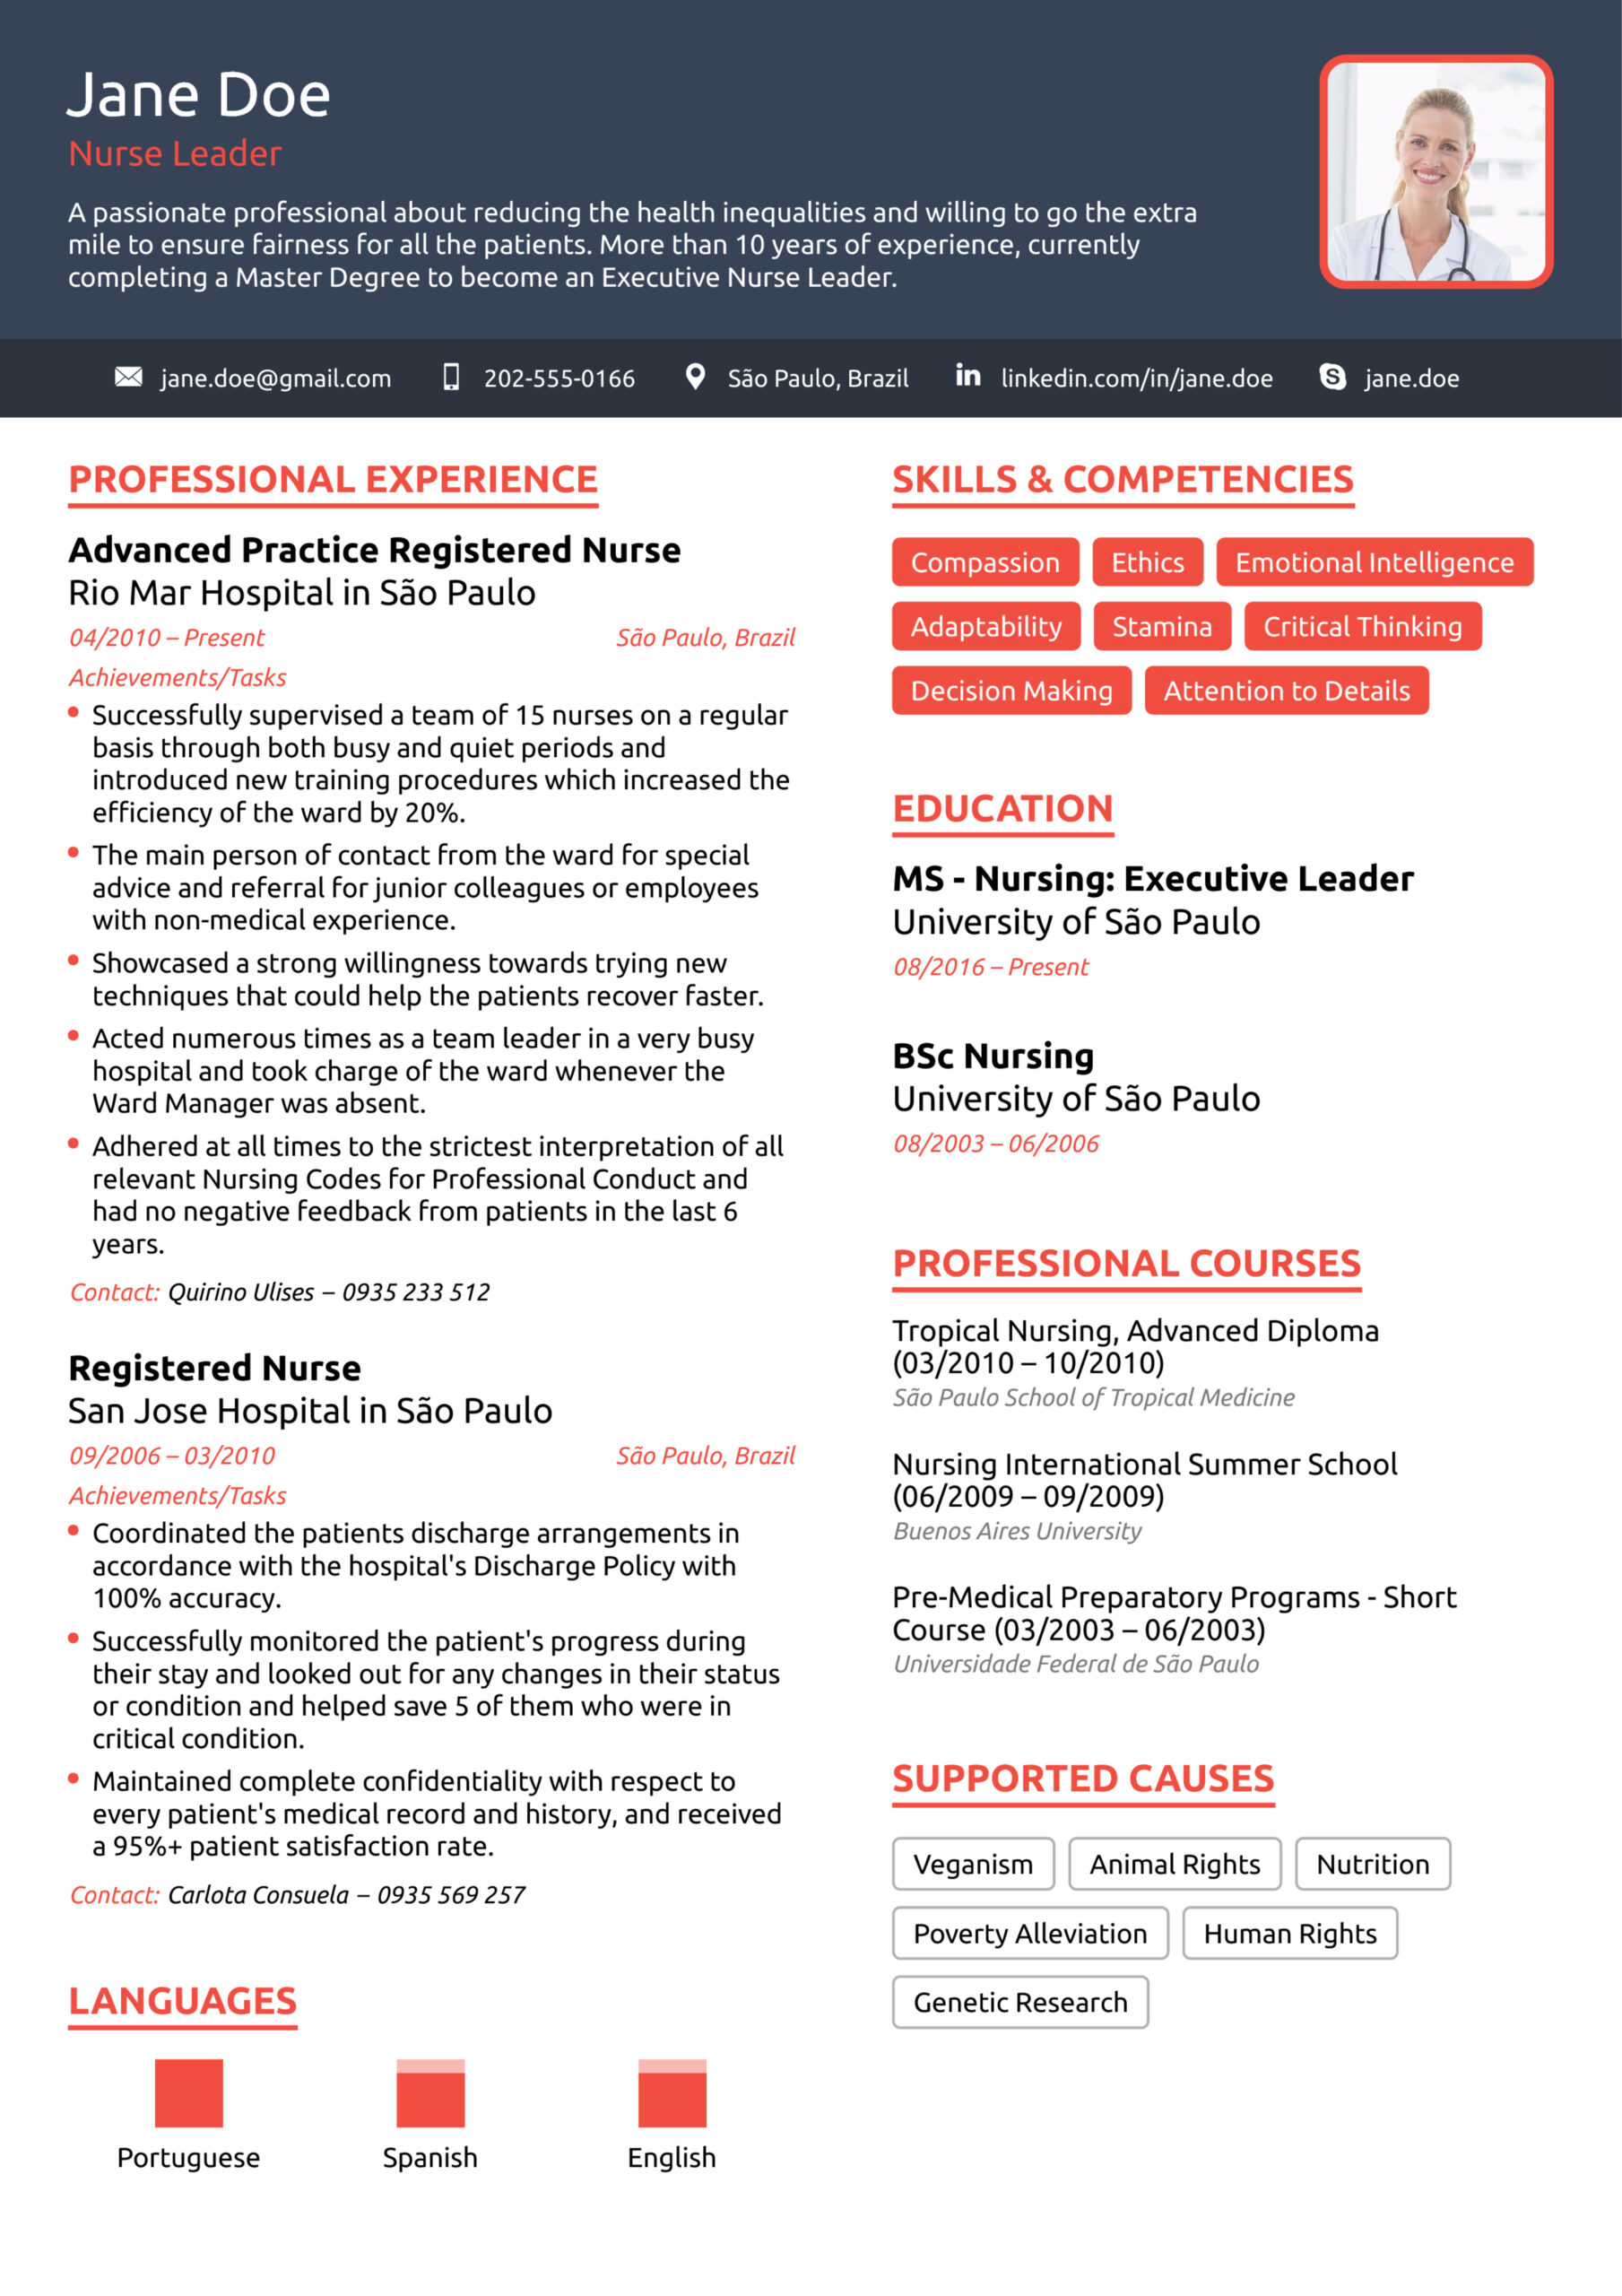 nurse resume example to guide for best nursing writing services rotimi the free job Resume Best Nursing Resume Writing Services